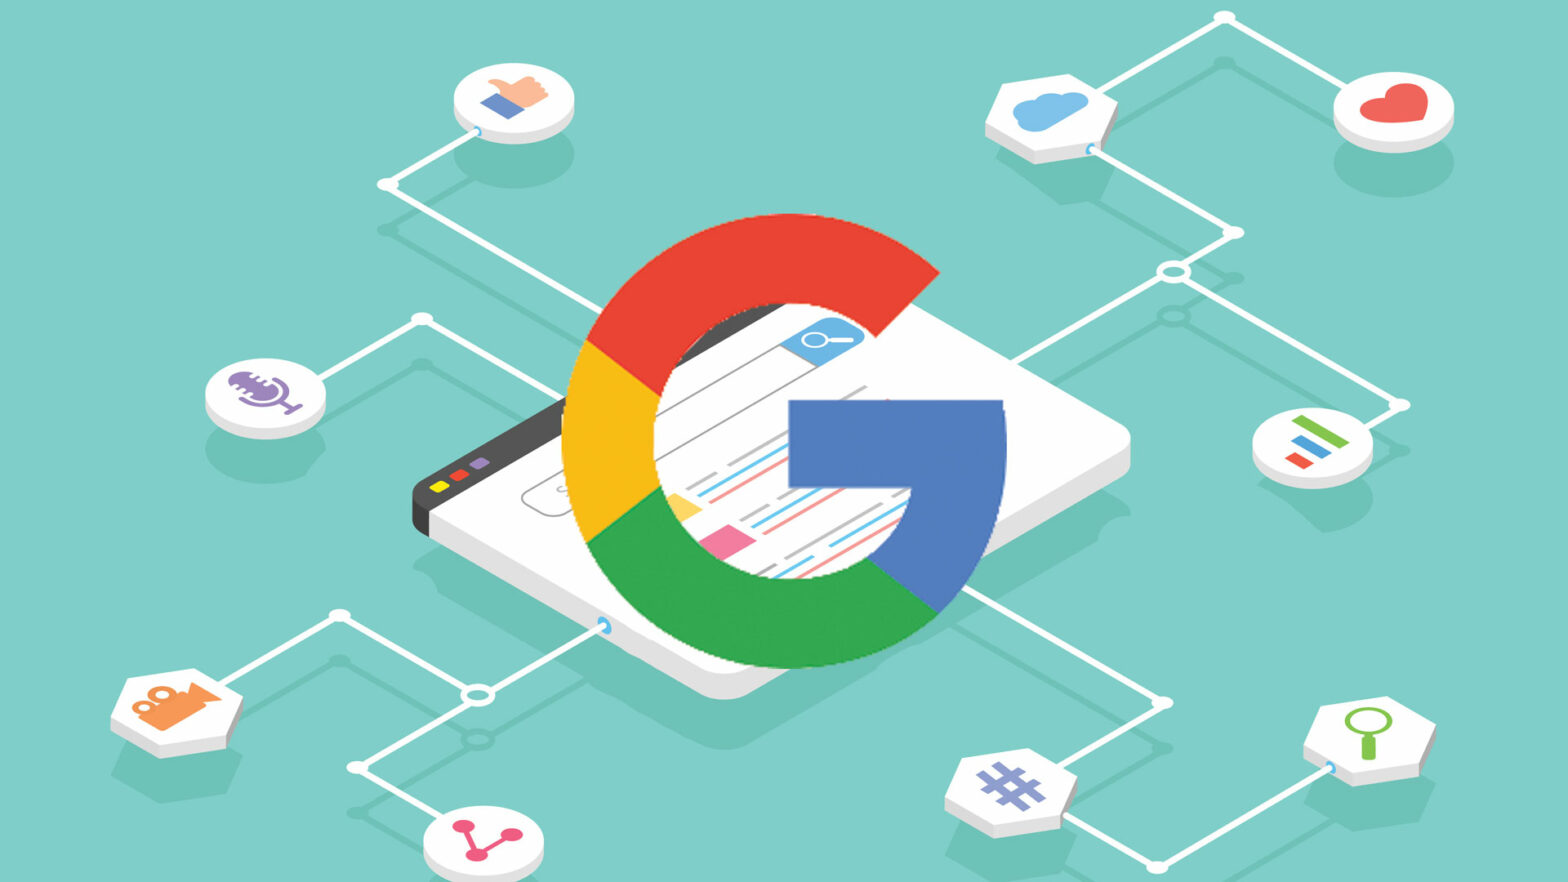 The Google January 2020 Core Update: What To Do If You Are Affected